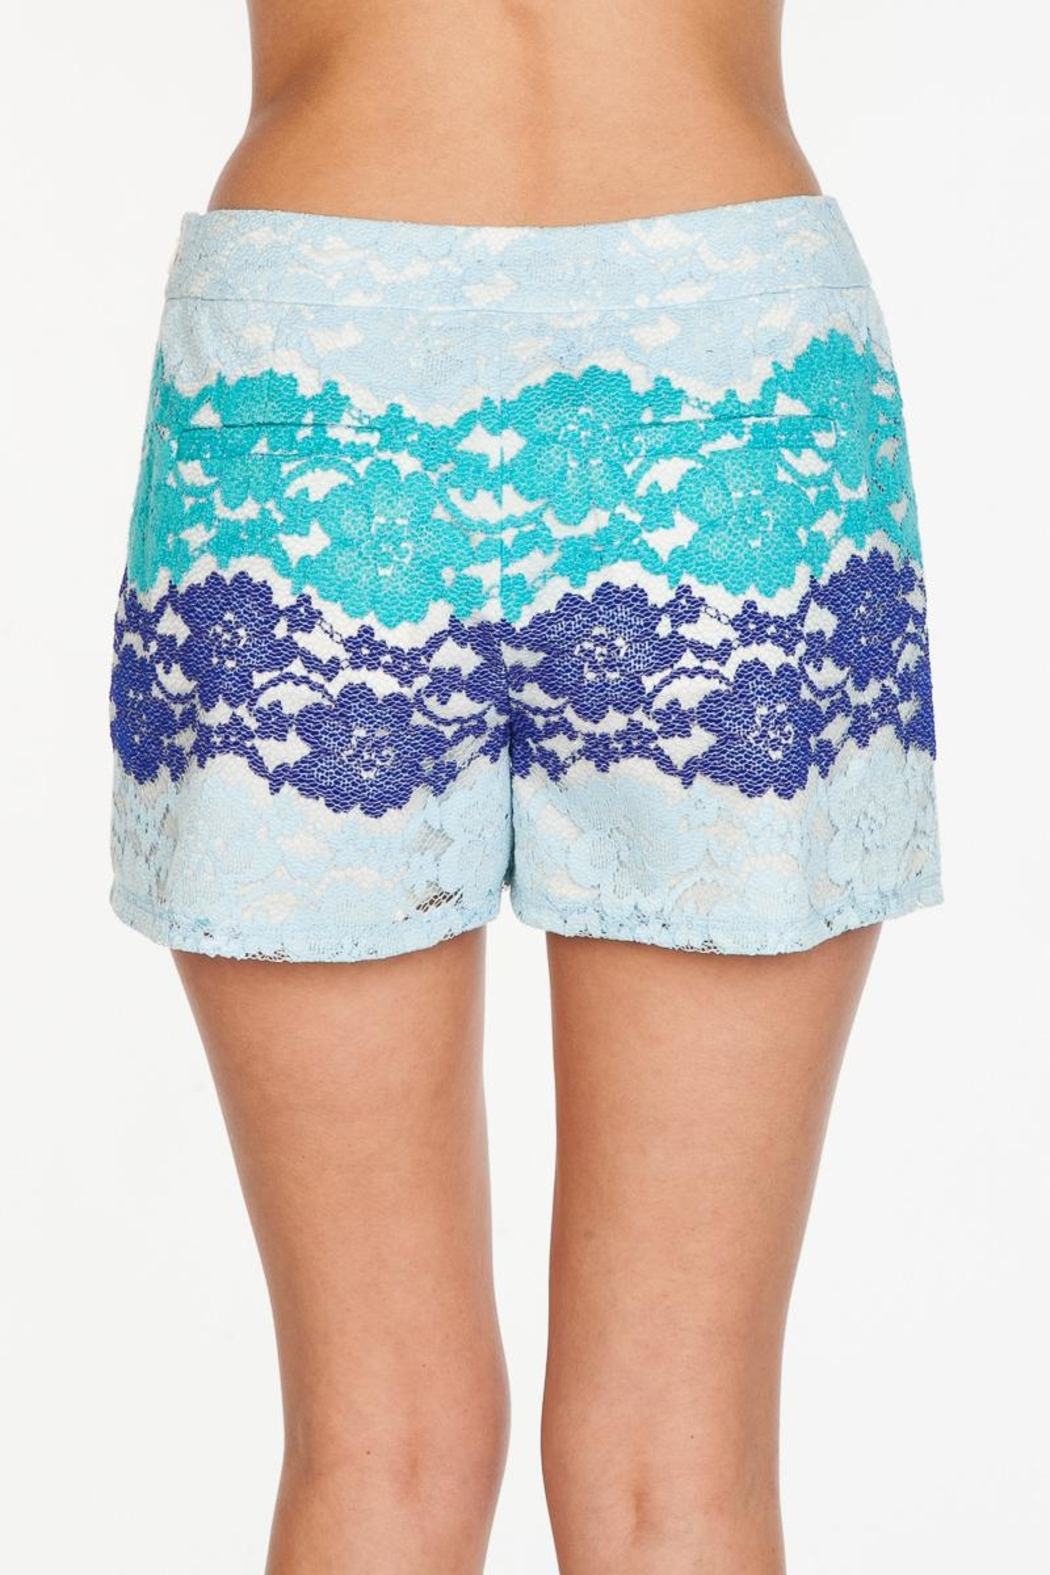 Everly Blue Lace Shorts - Side Cropped Image